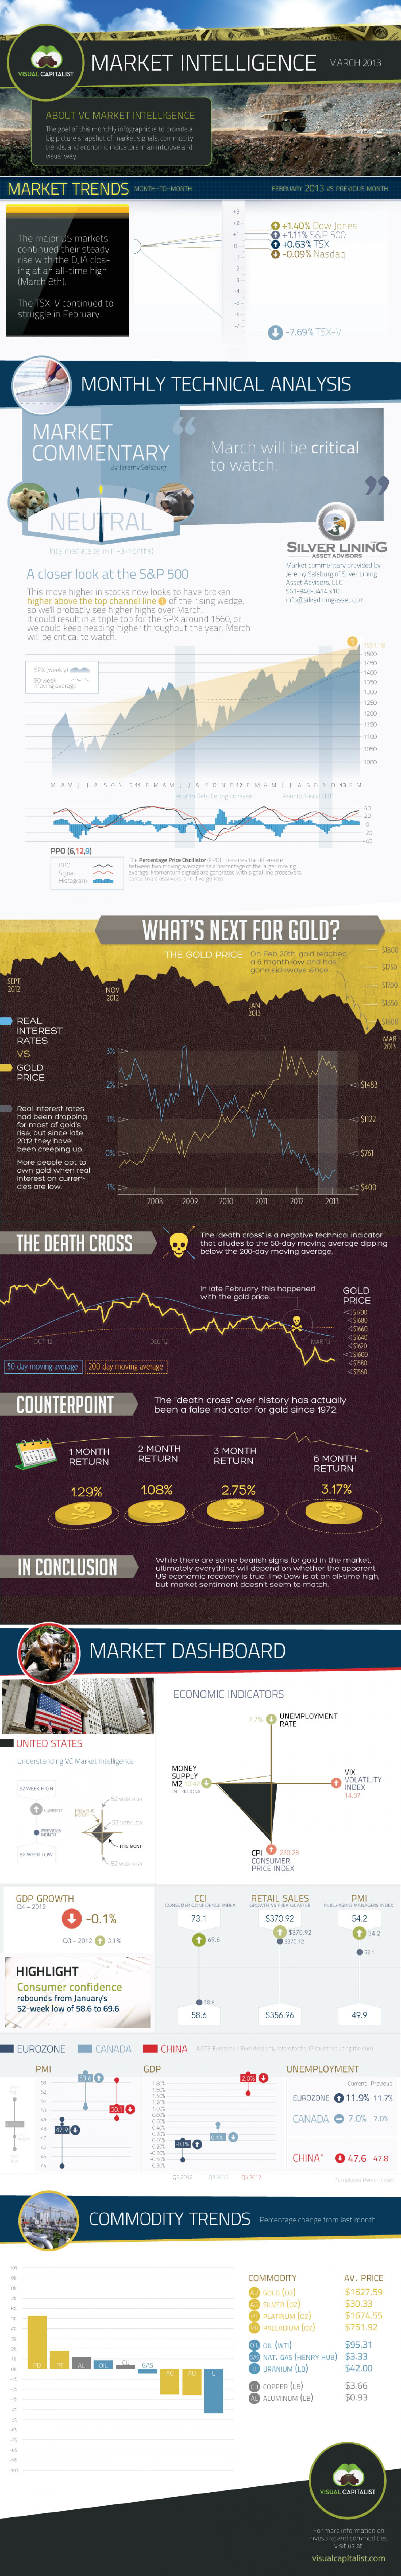 VC Market Intelligence - March 2013 Infographic